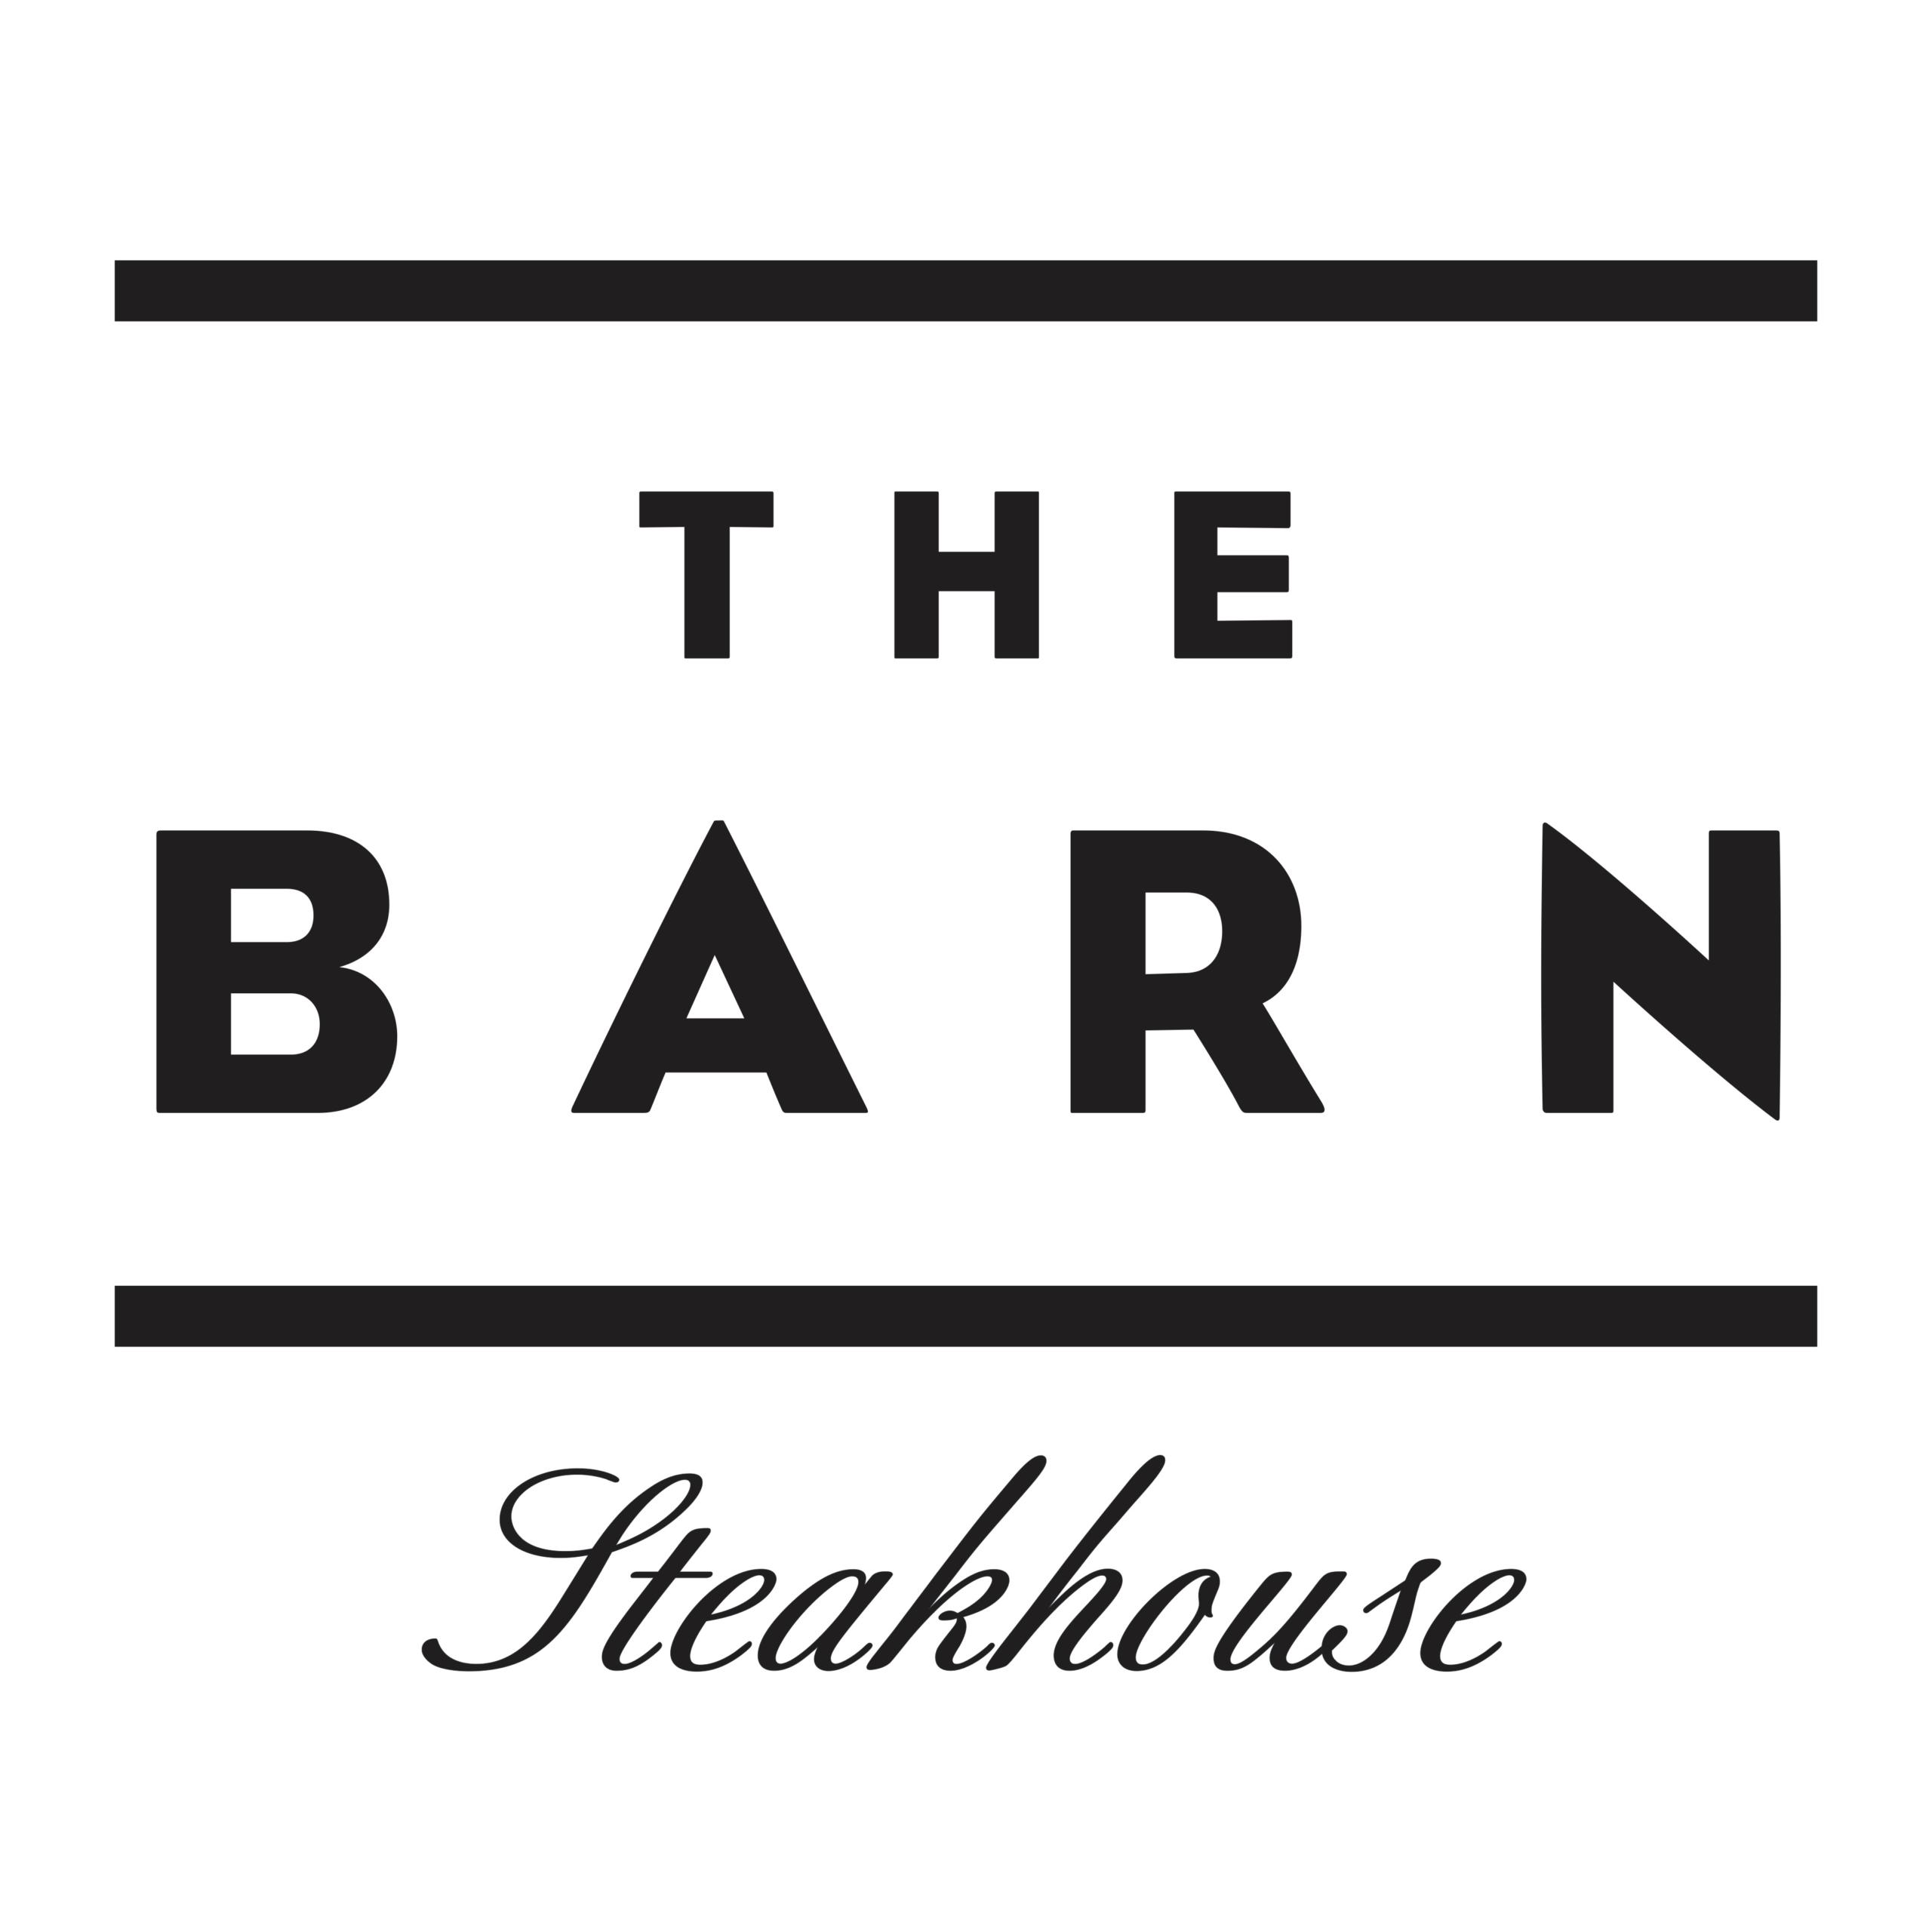 The Barn Steakhouse